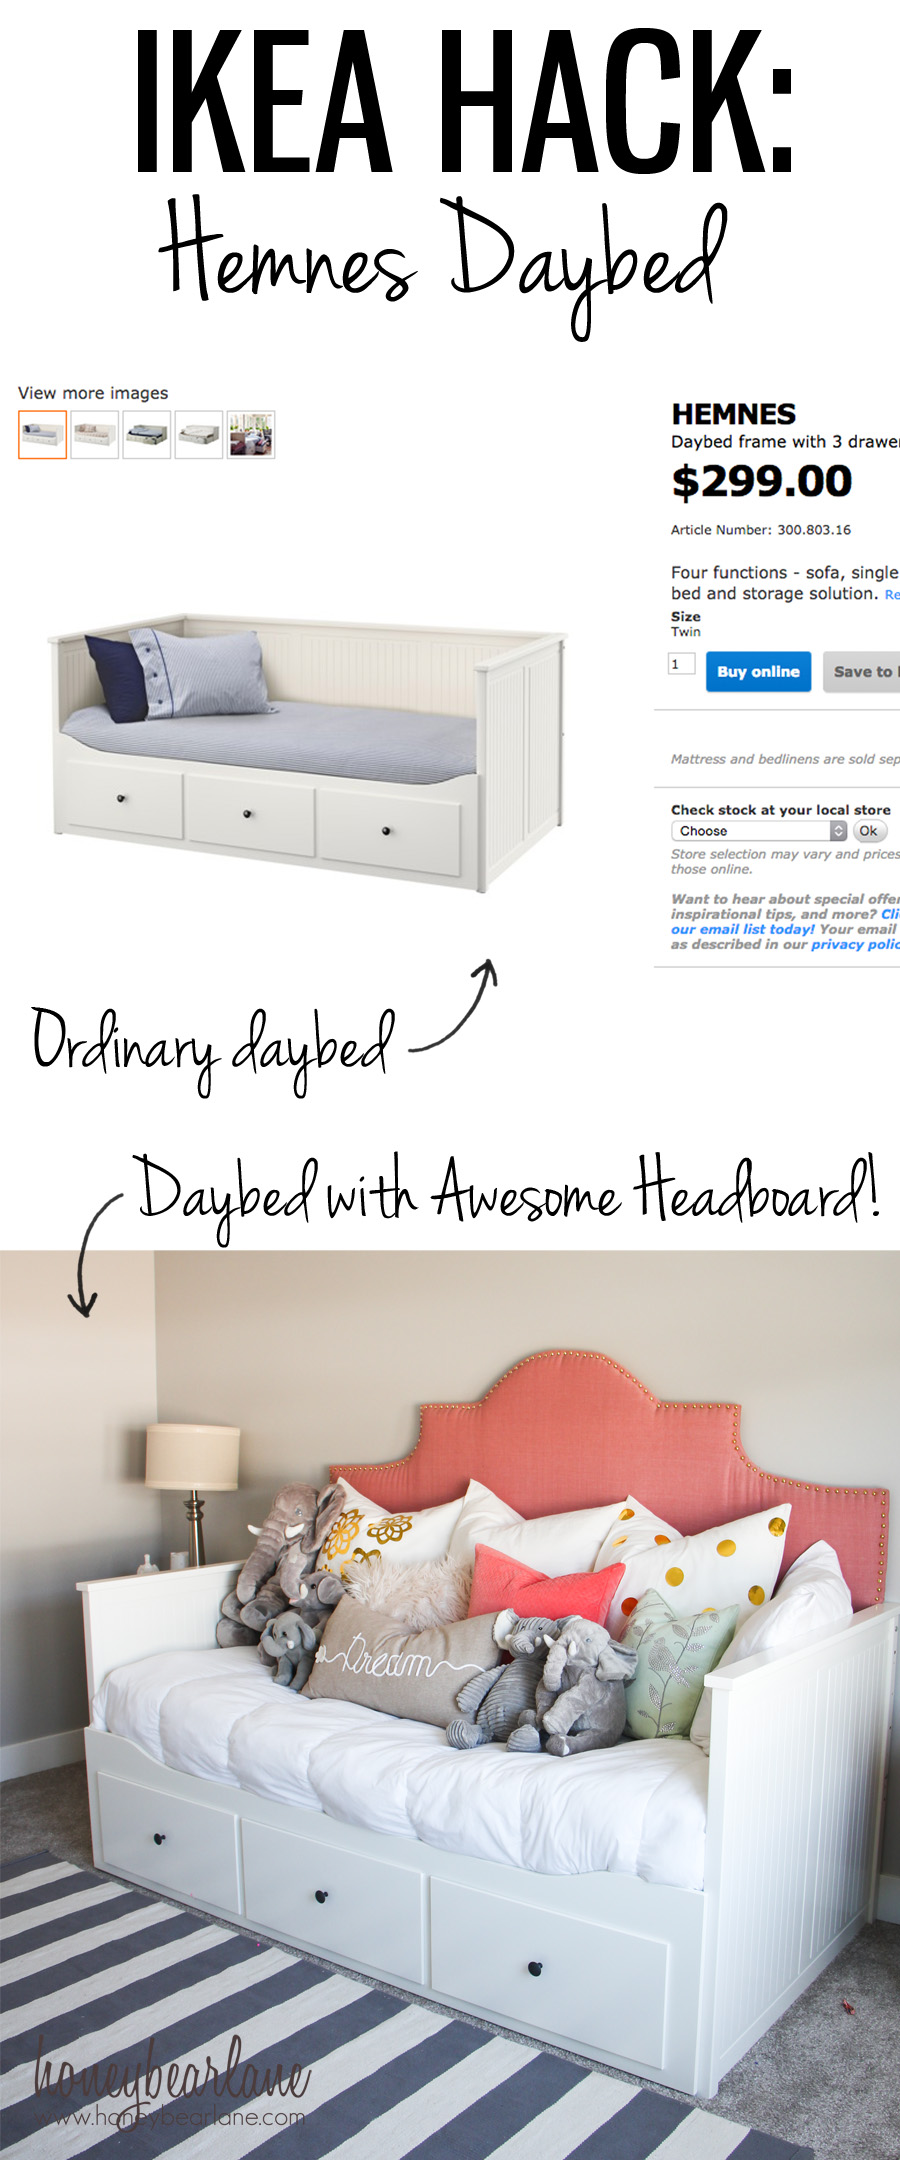 hack so here it is my hemnes daybed ikea hack